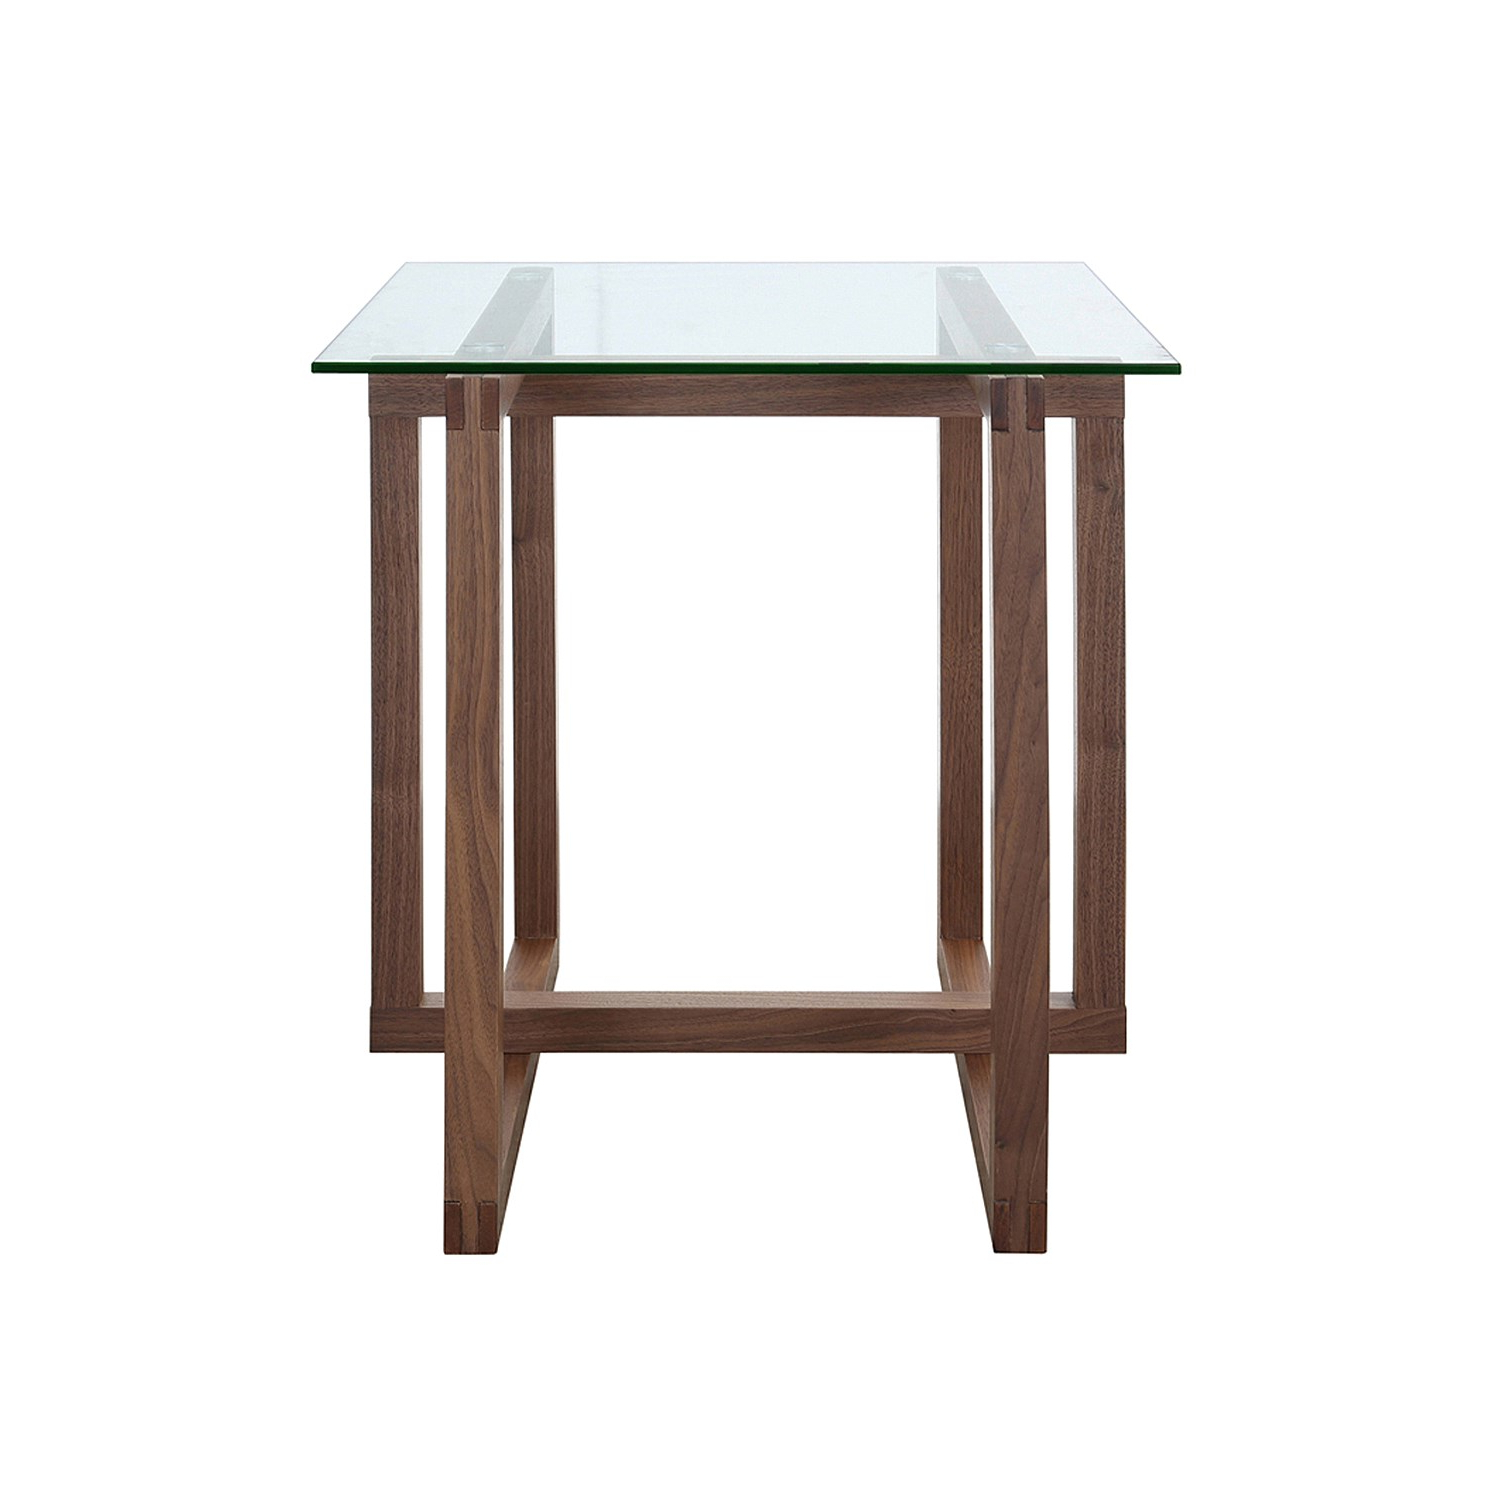 Living Room Furniture,view Range Online Now – Kyra Side Table 55X55Cm Throughout Kyra Console Tables (Gallery 8 of 20)